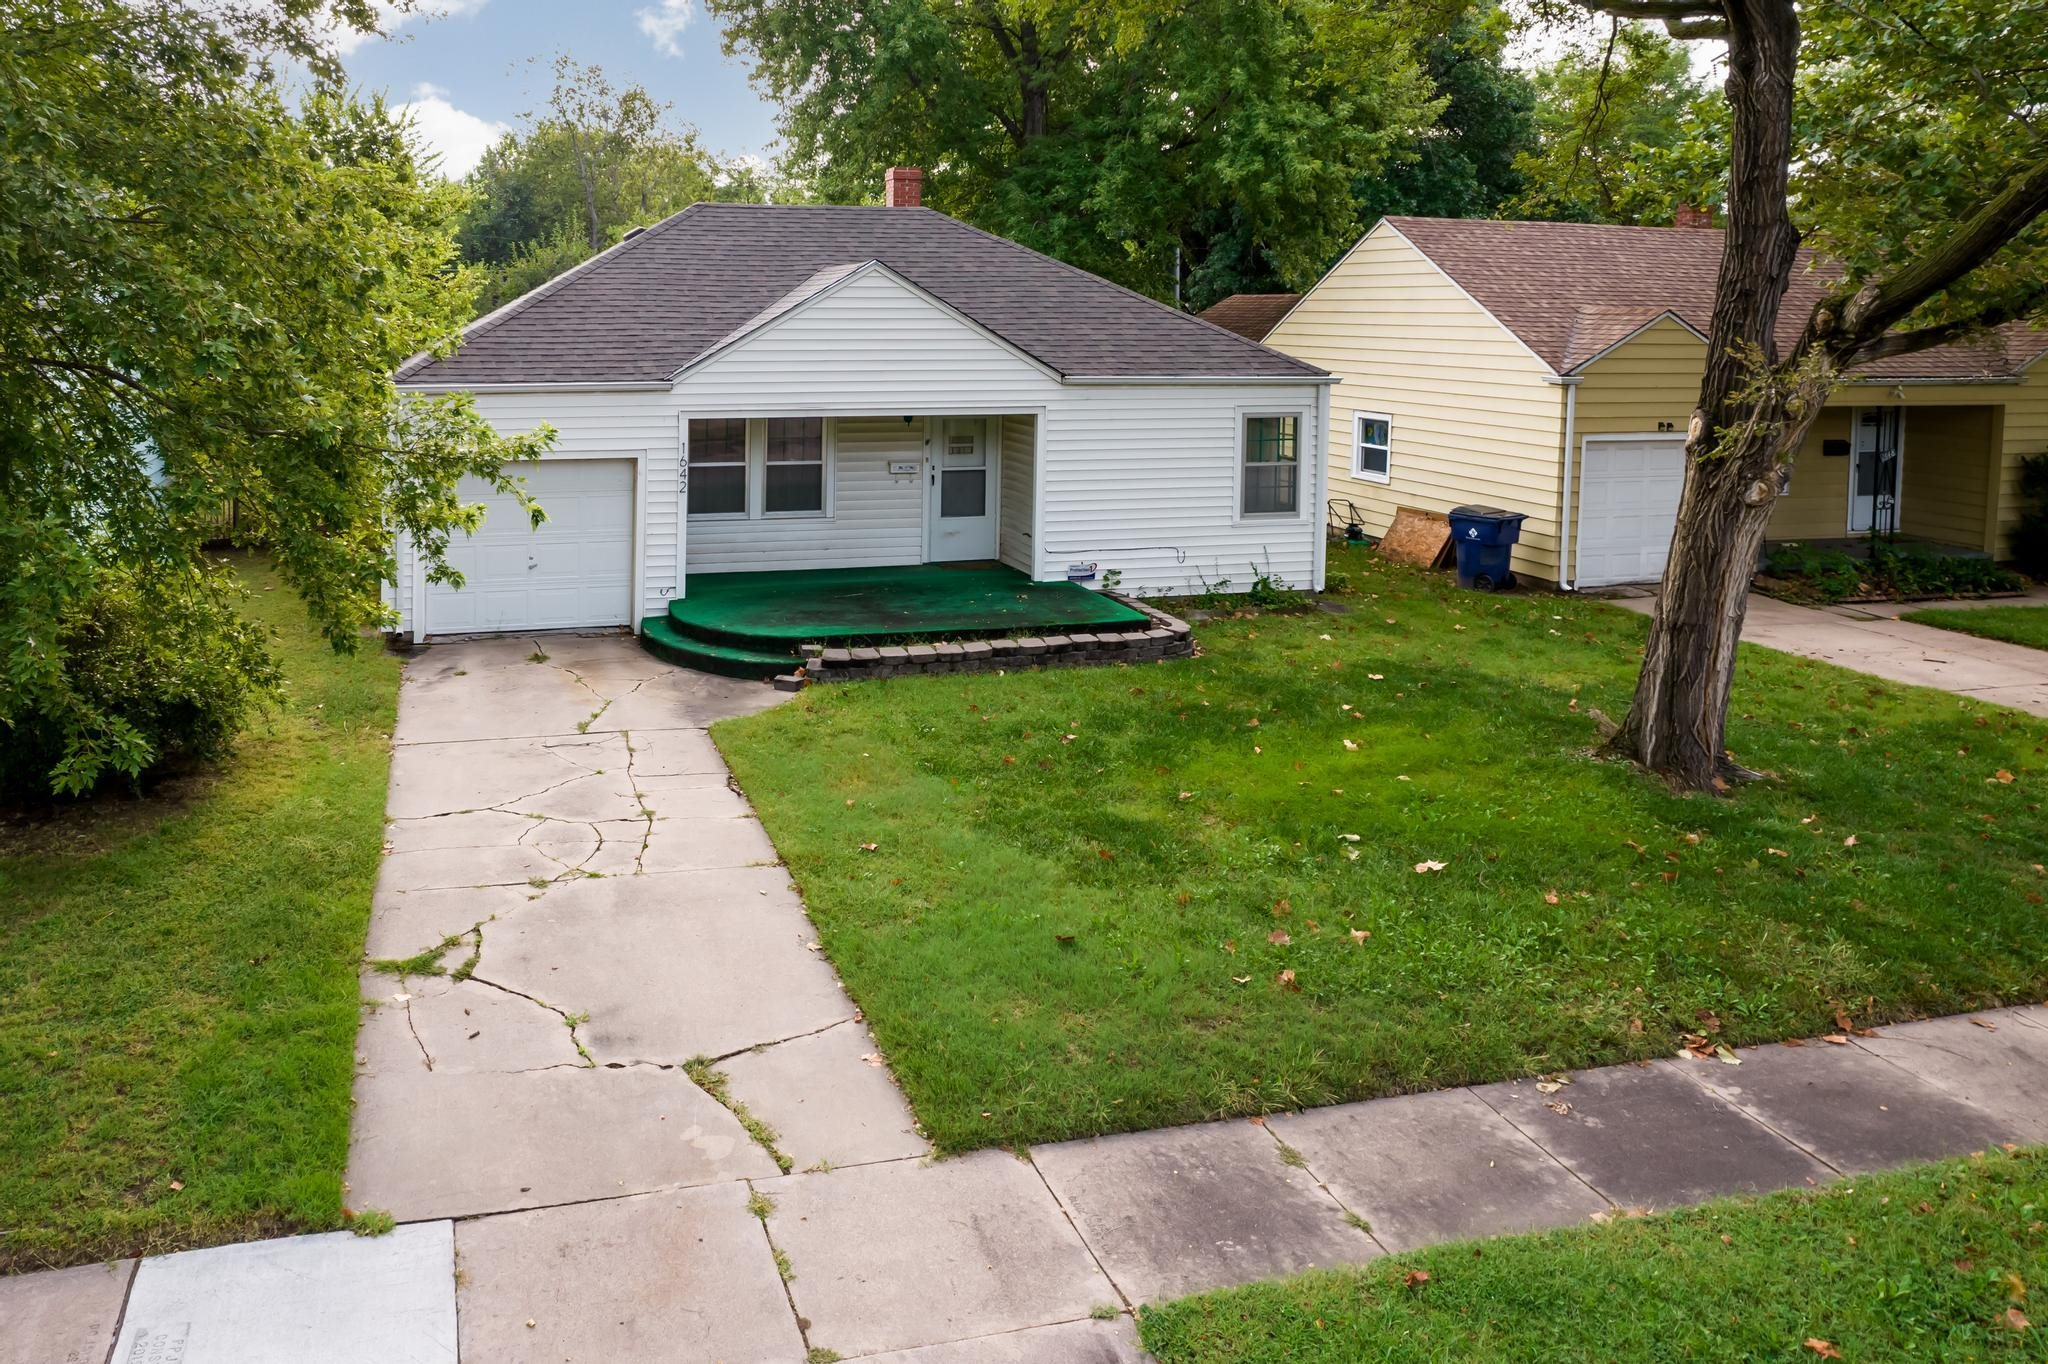 Great starter home or investment property. Close to all the amenities and easy commute with I-35 and